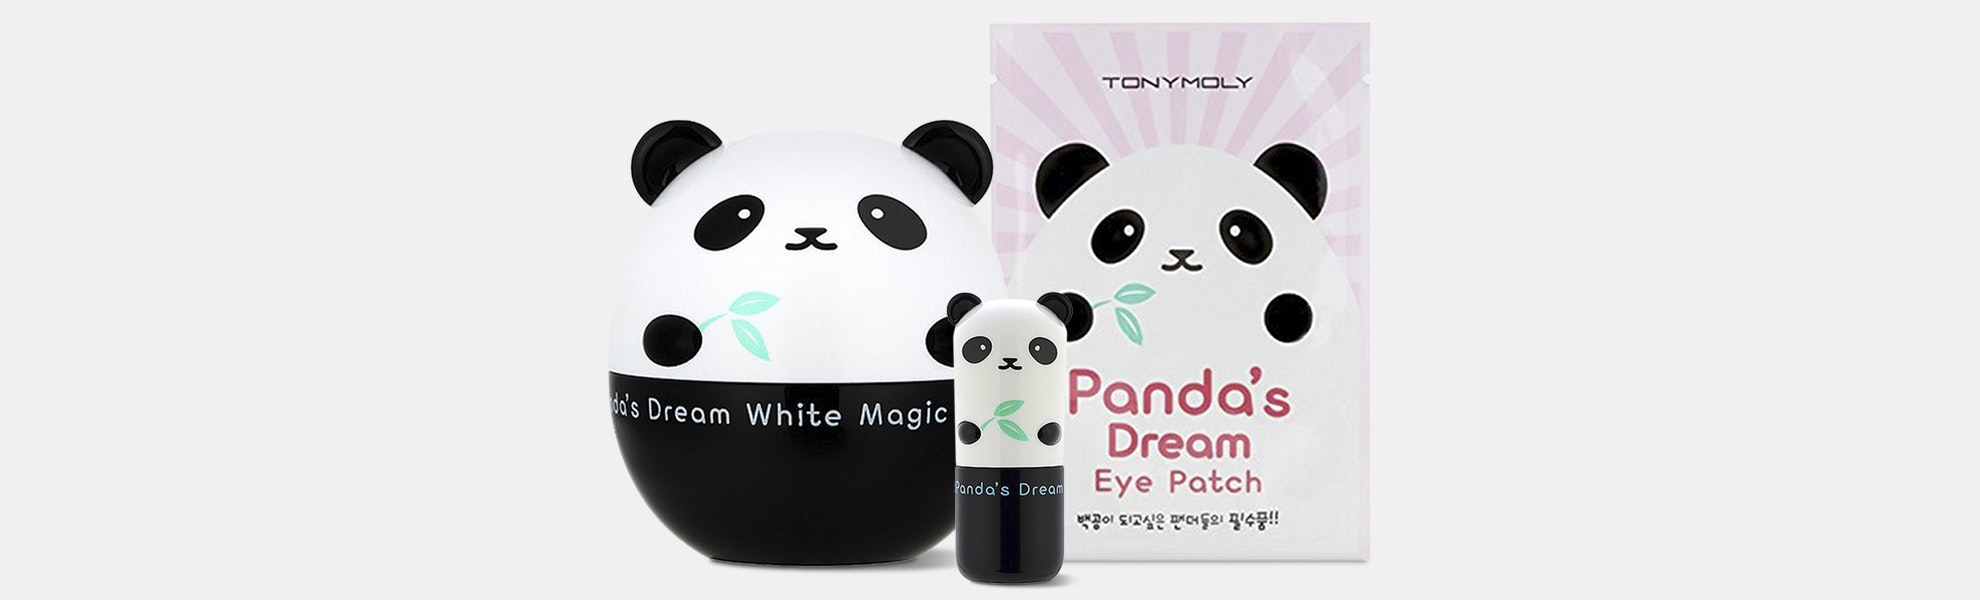 Tony Moly Panda's Dream Bundle 2